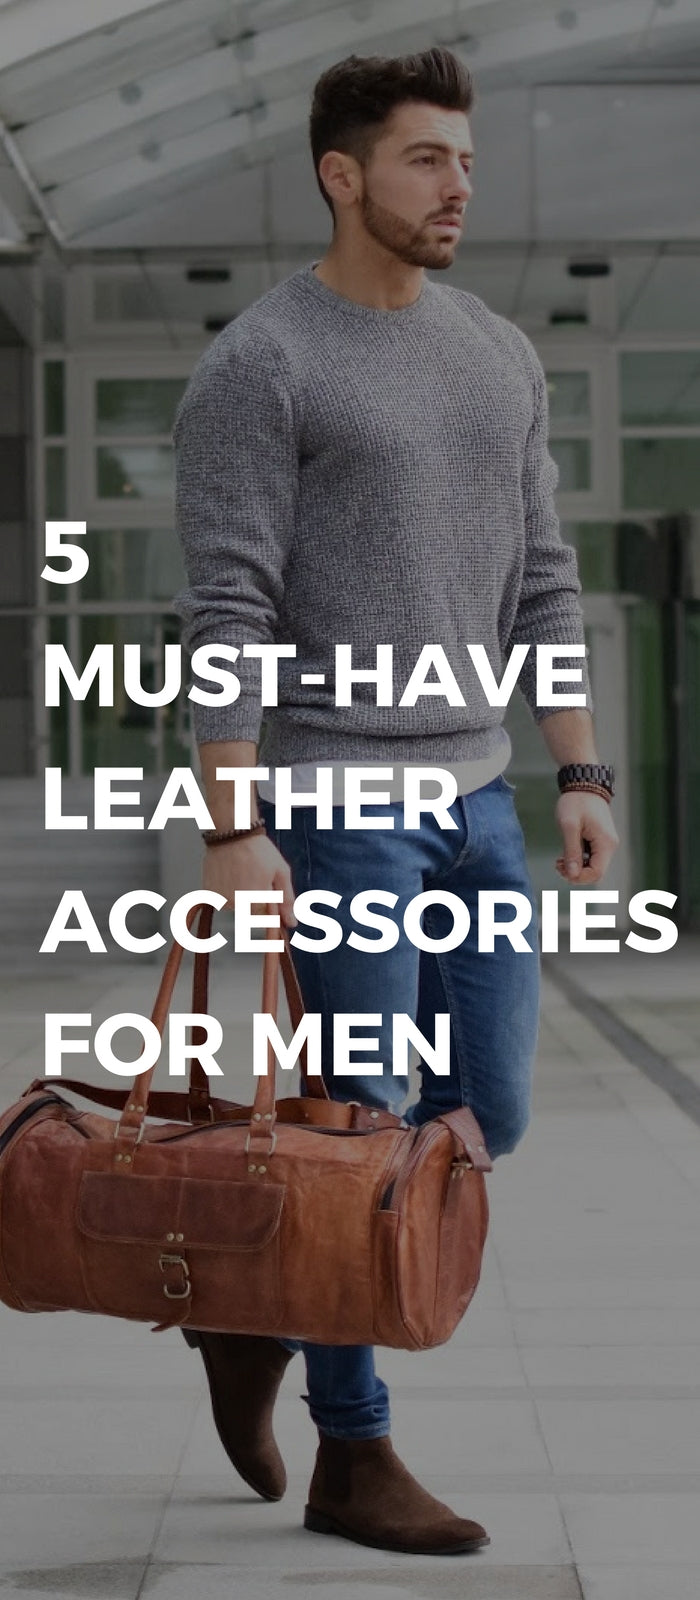 Leather accessories for men